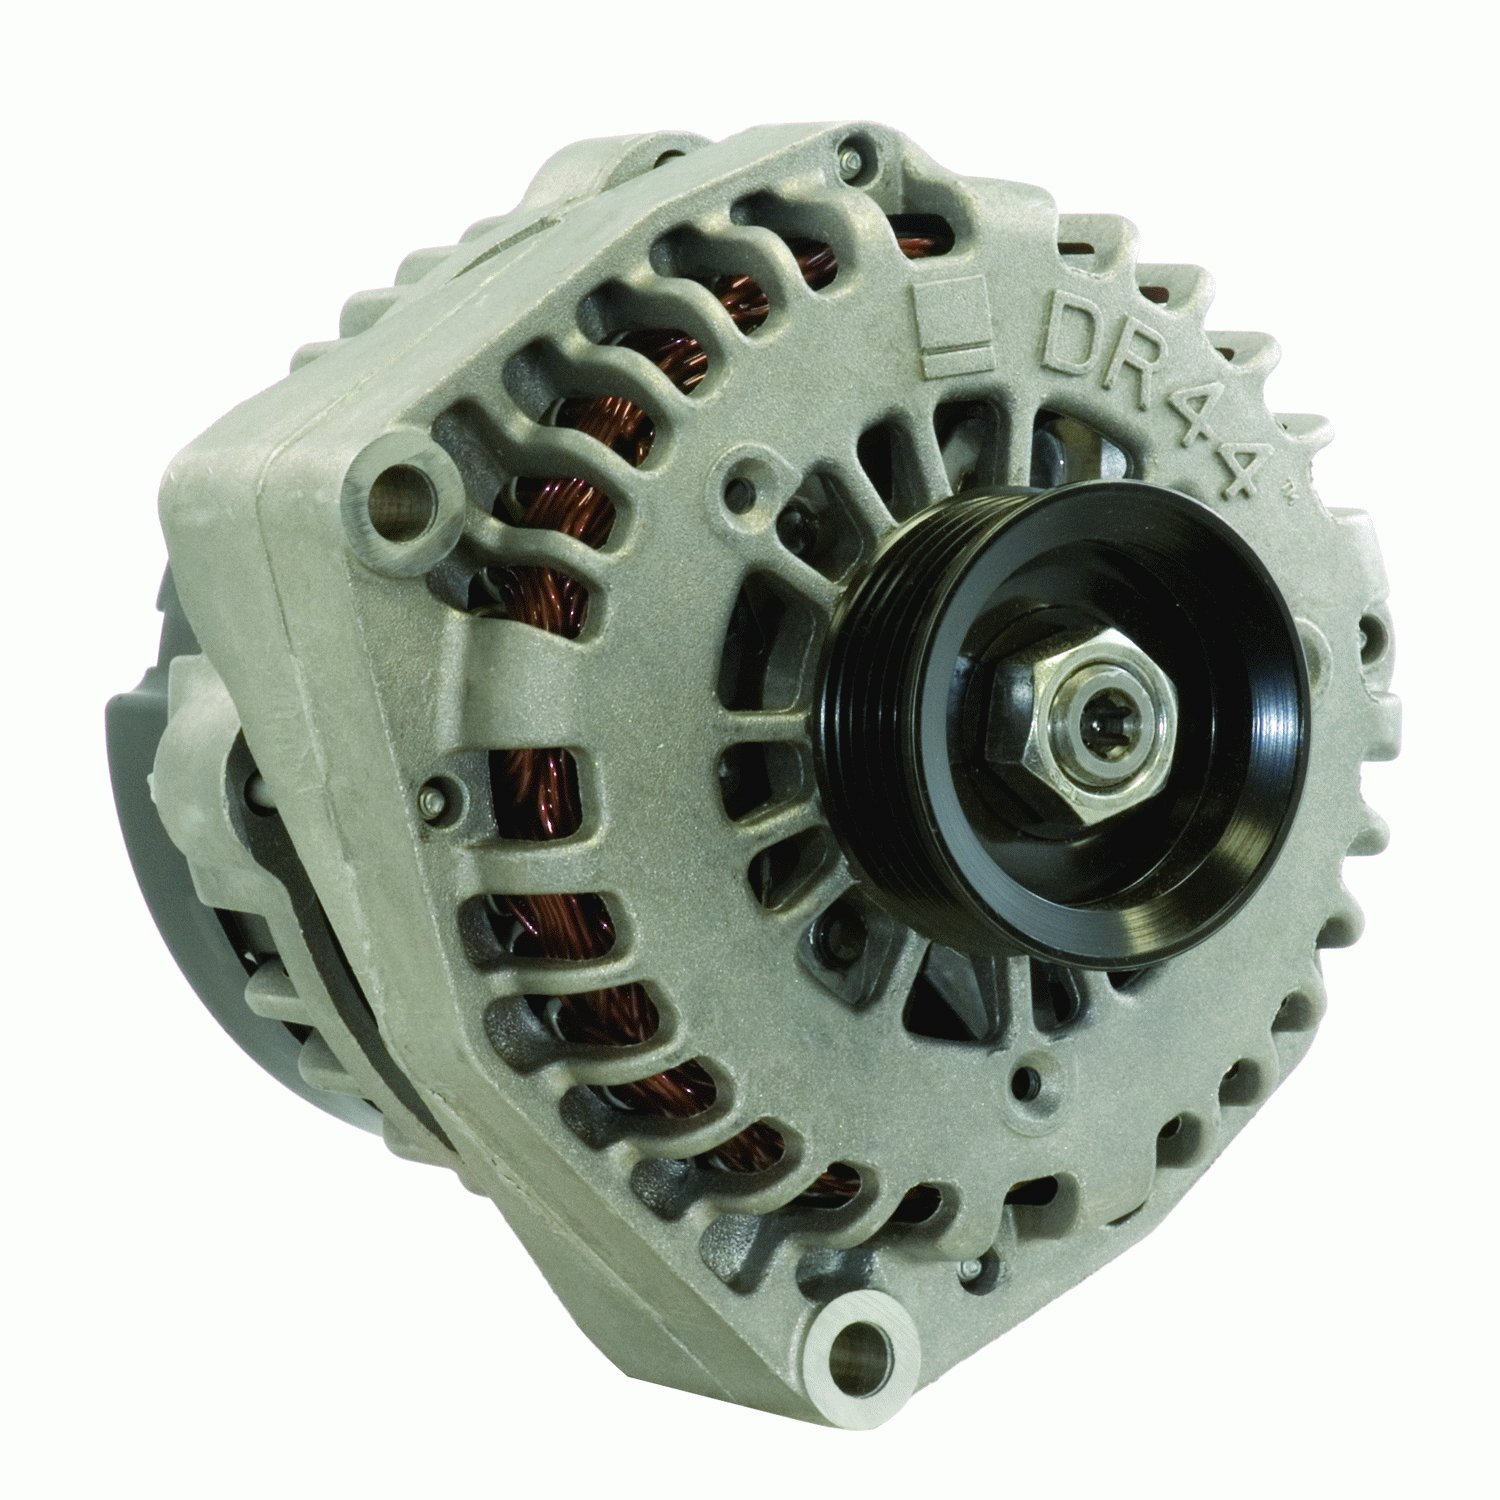 ACDelco 335-1196 Professional Alternator by ACDelco